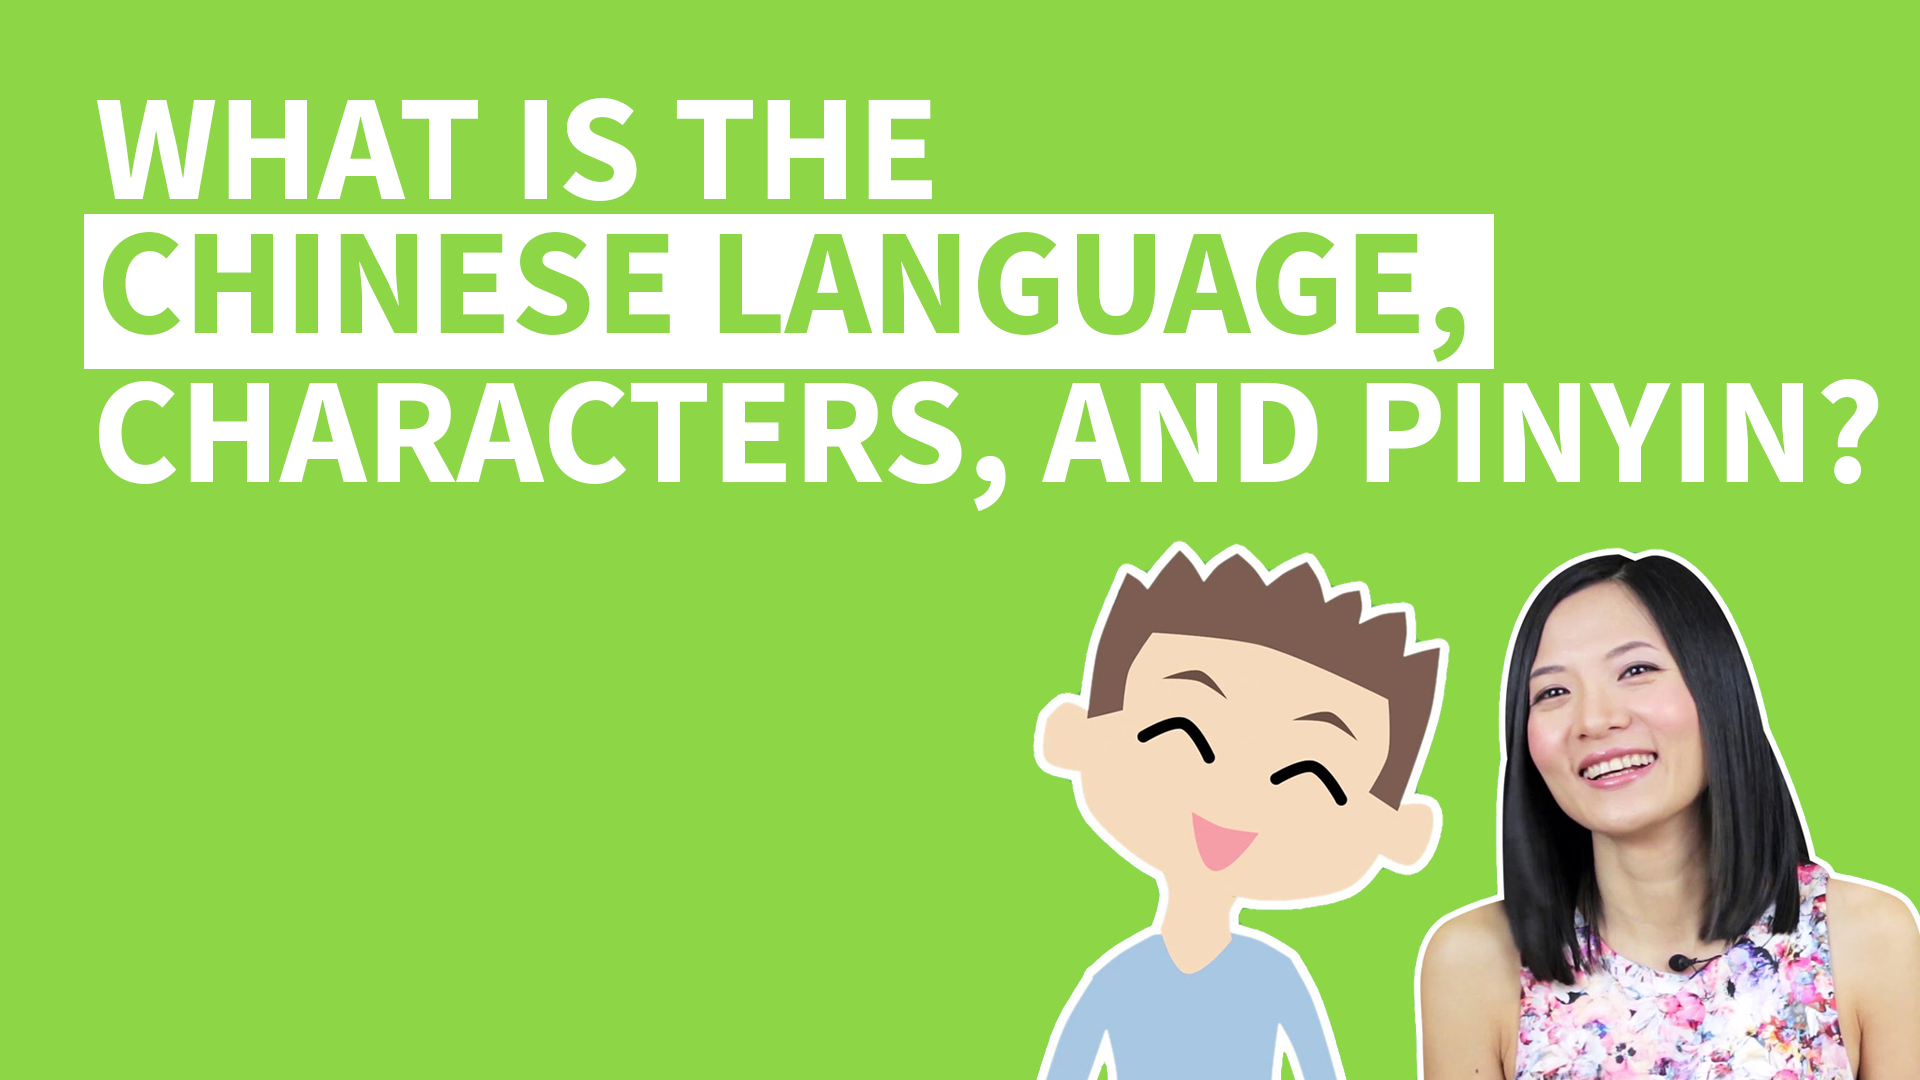 What is the Chinese language? What are Chinese Characters and Pinyin? Watch this introduction to Chinese characters to learn about Chinese writing system!